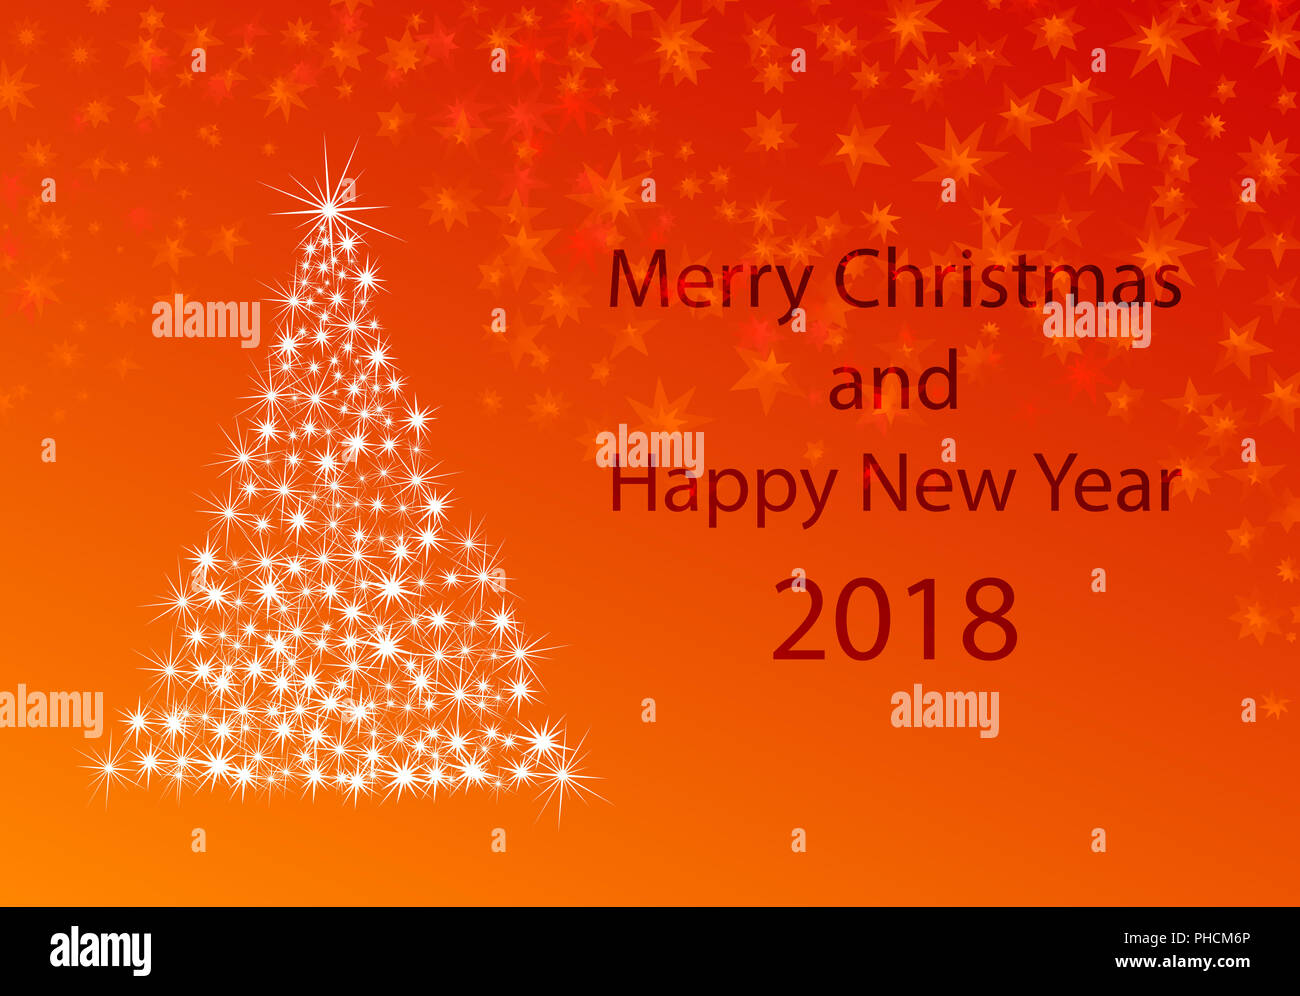 xmas greeting card for new years 2018 Stock Photo: 217252862 - Alamy